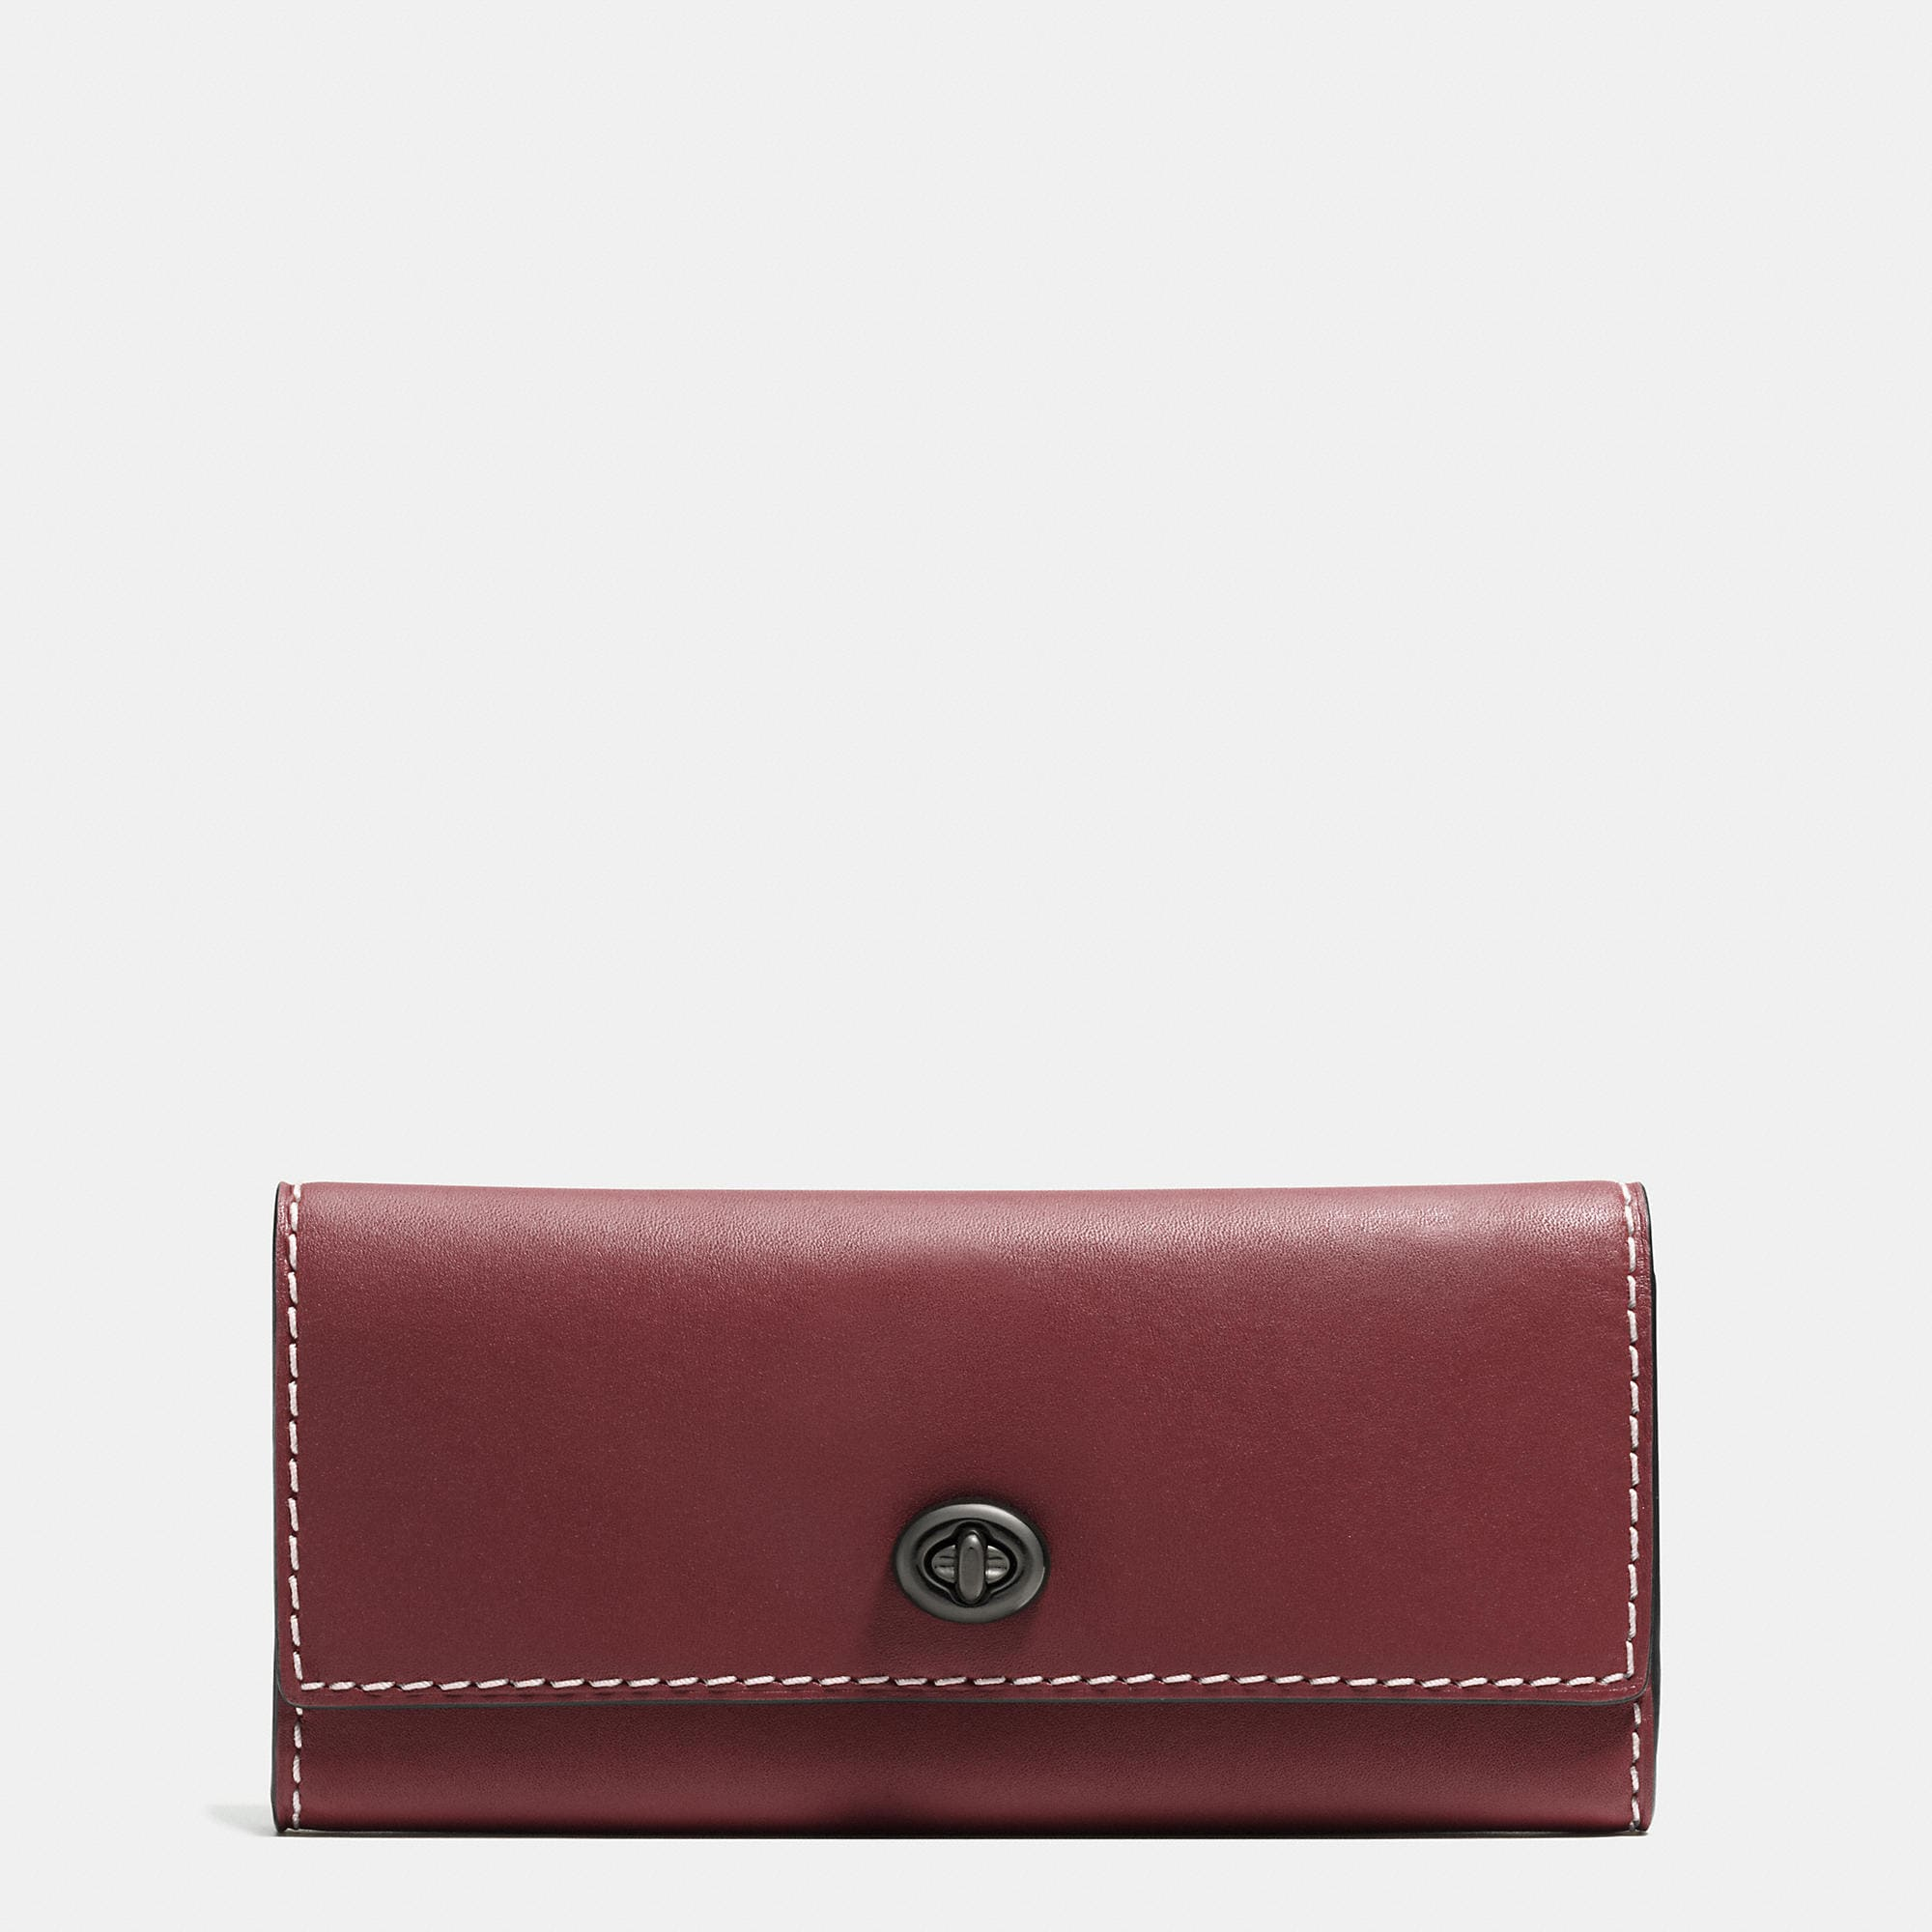 Coach Turnlock Wallet In Burnished Glovetanned Leather